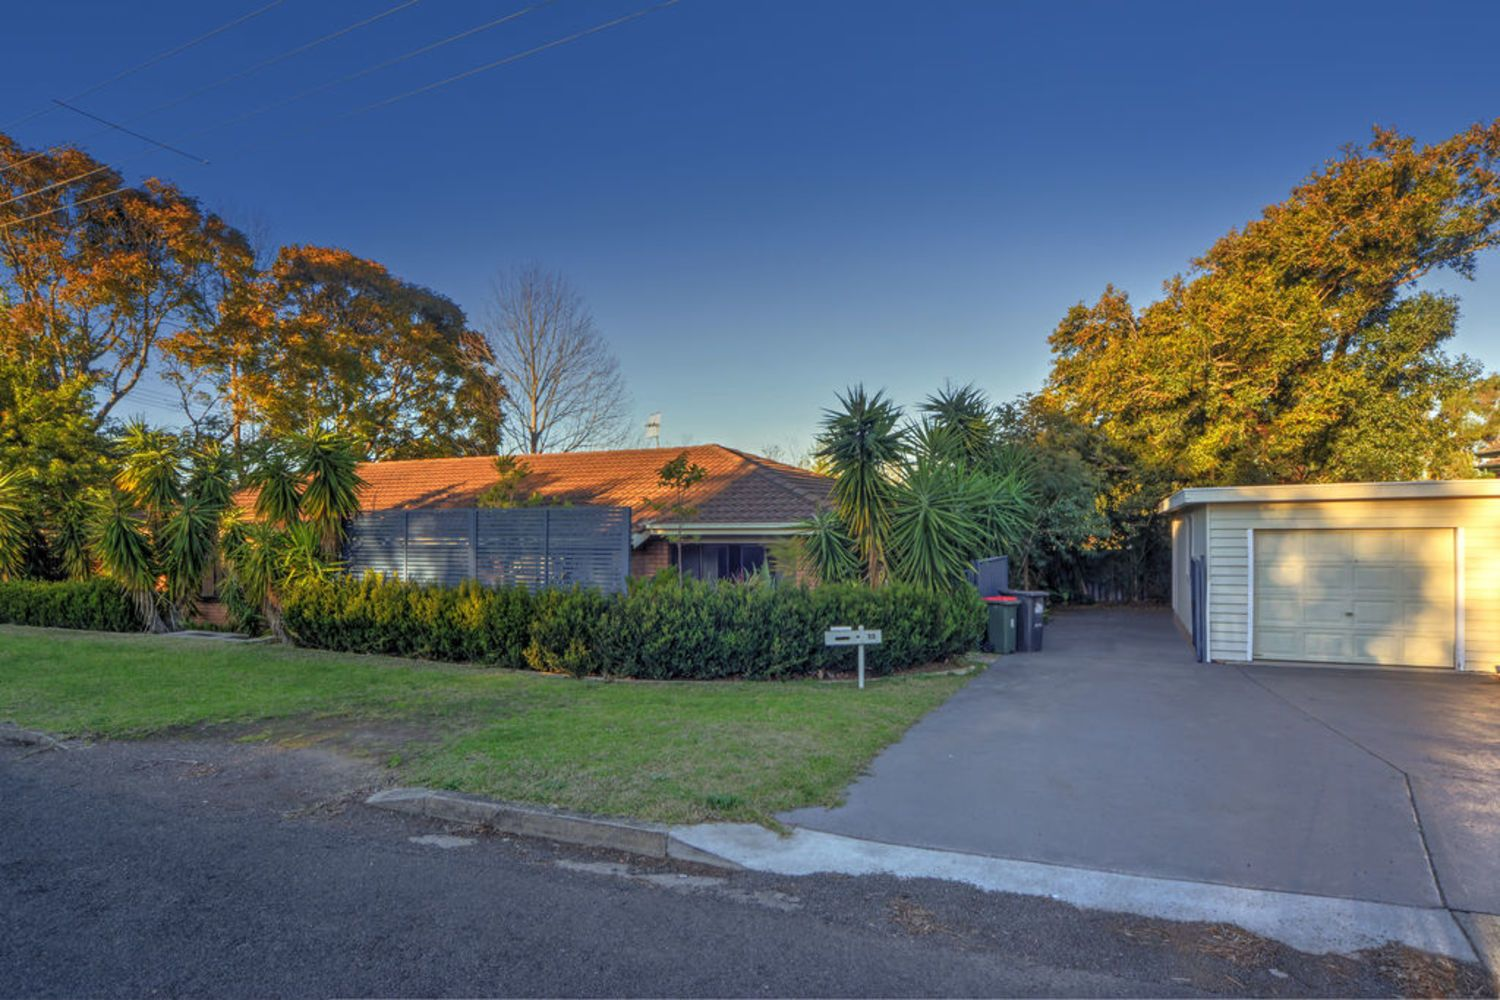 22 Birriley Street, Bomaderry NSW 2541, Image 0